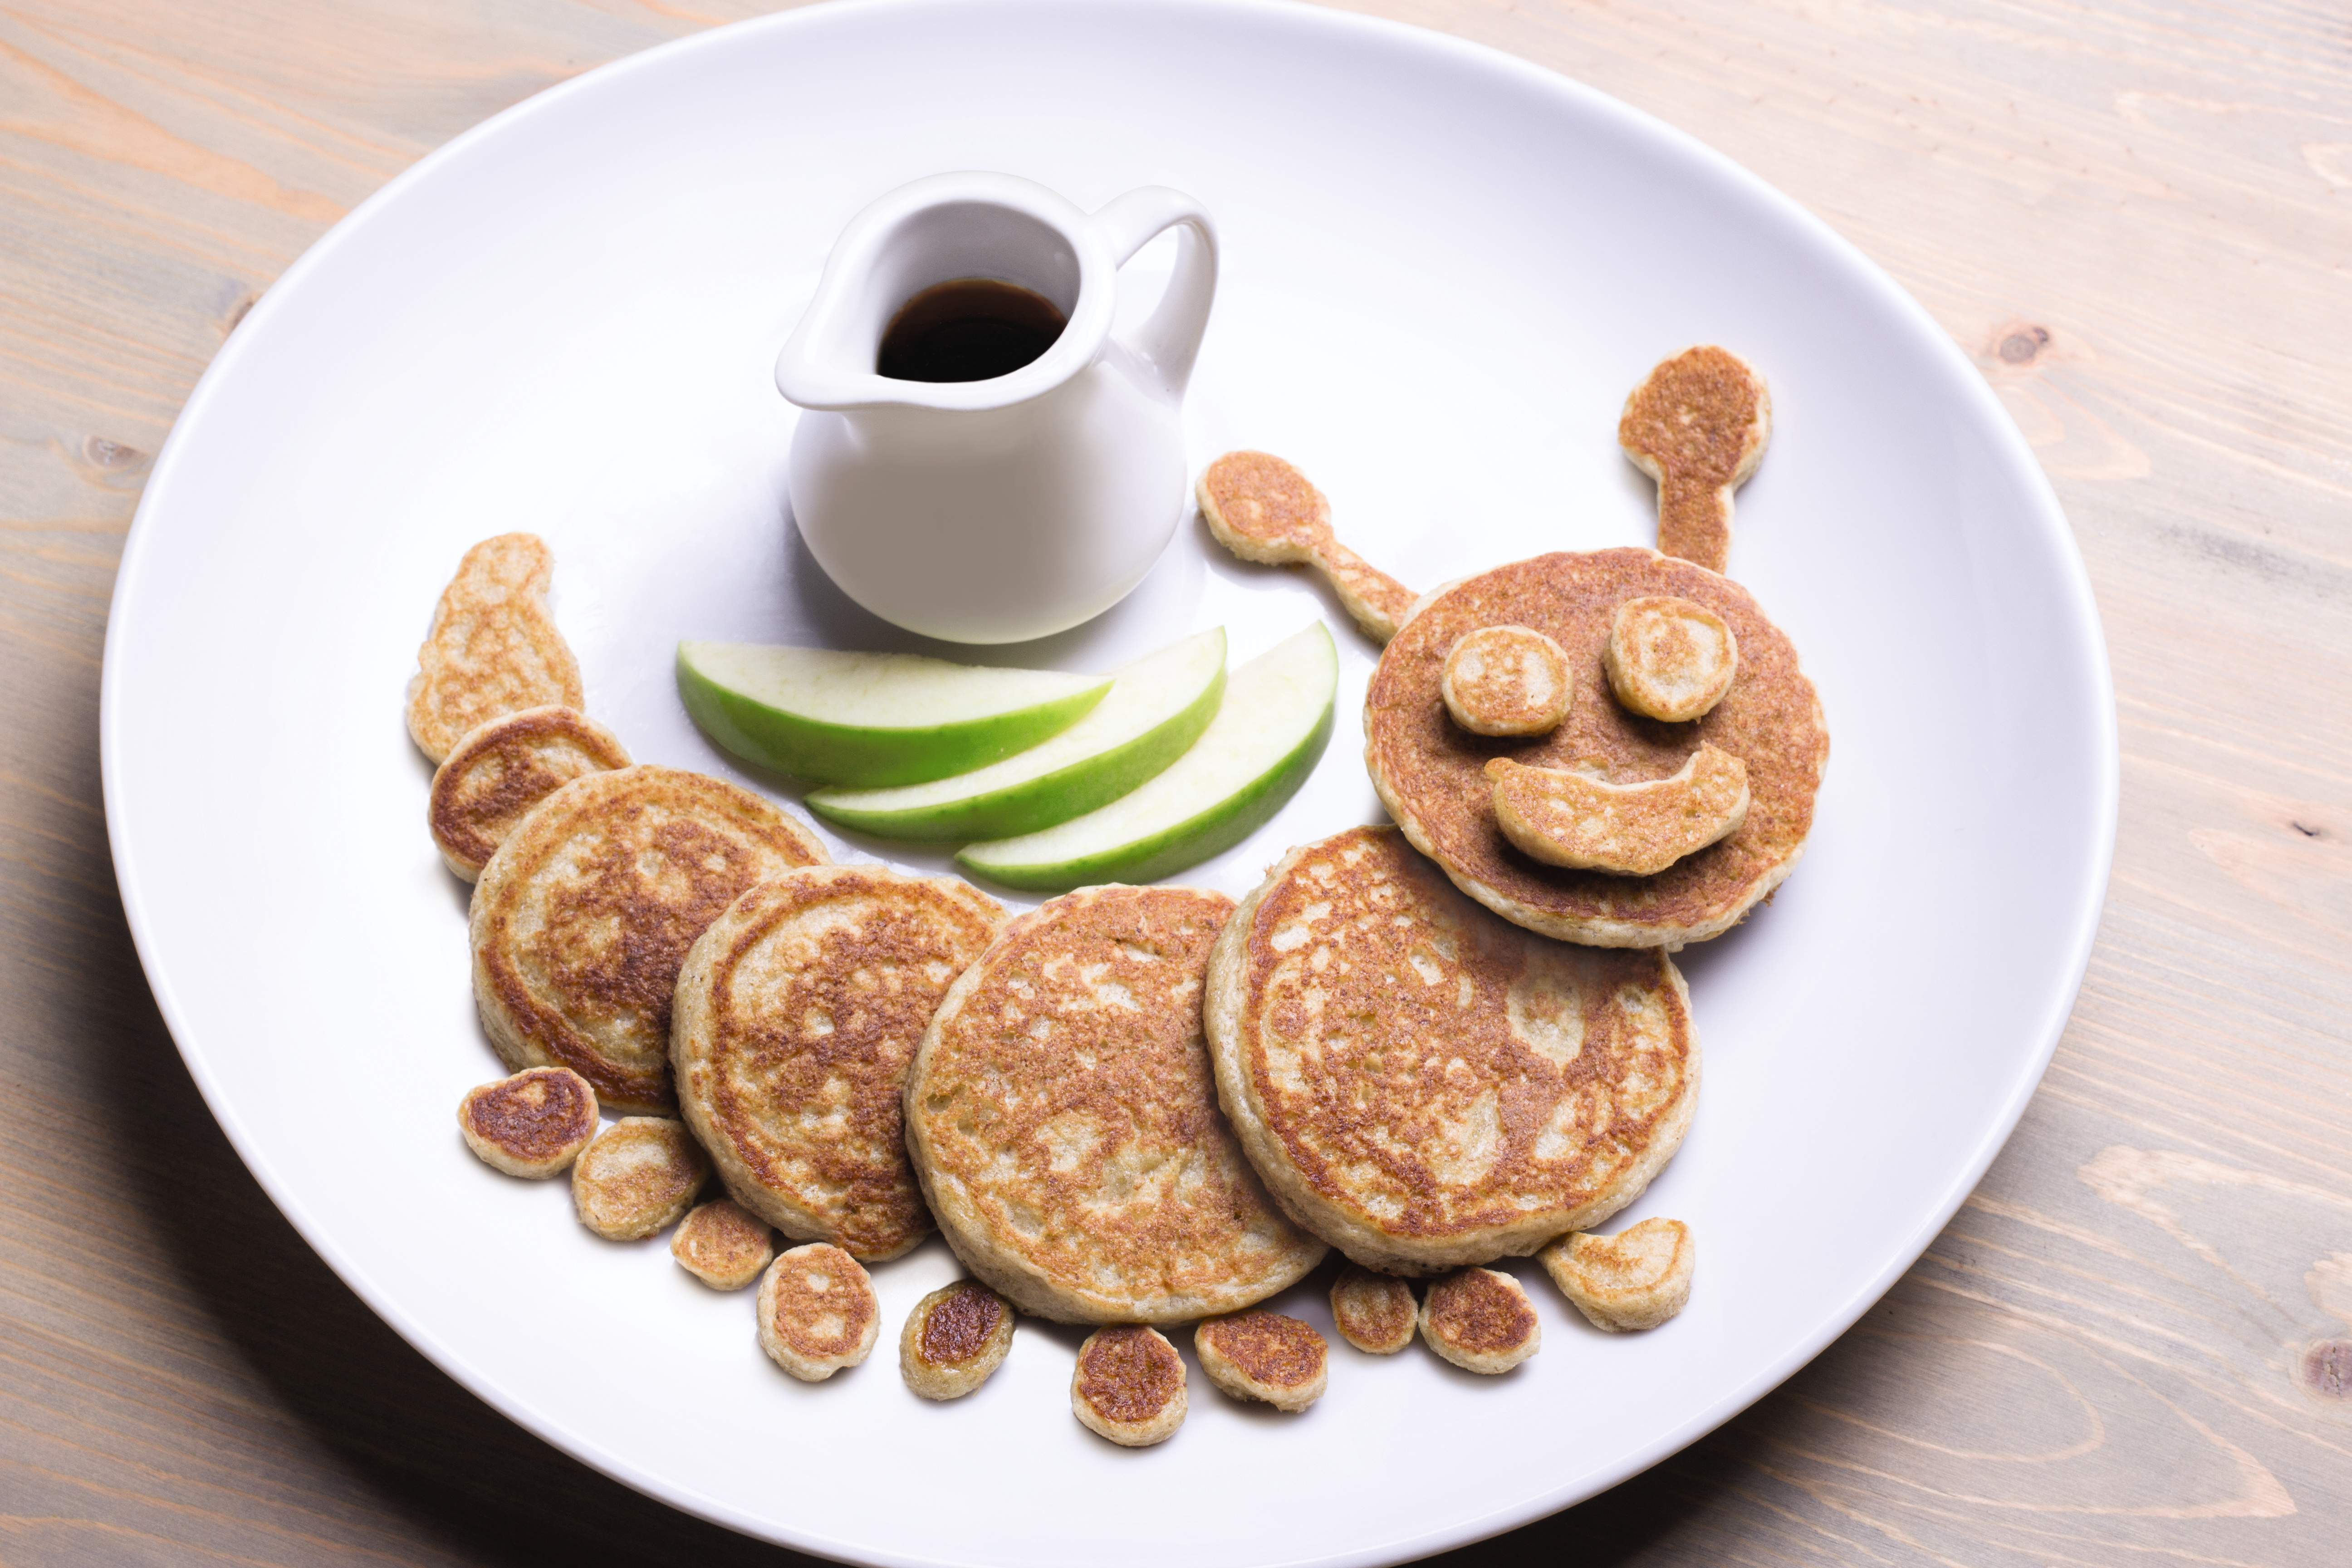 Oatmeal and apple pancakes with syrup formed into a caterpillar.